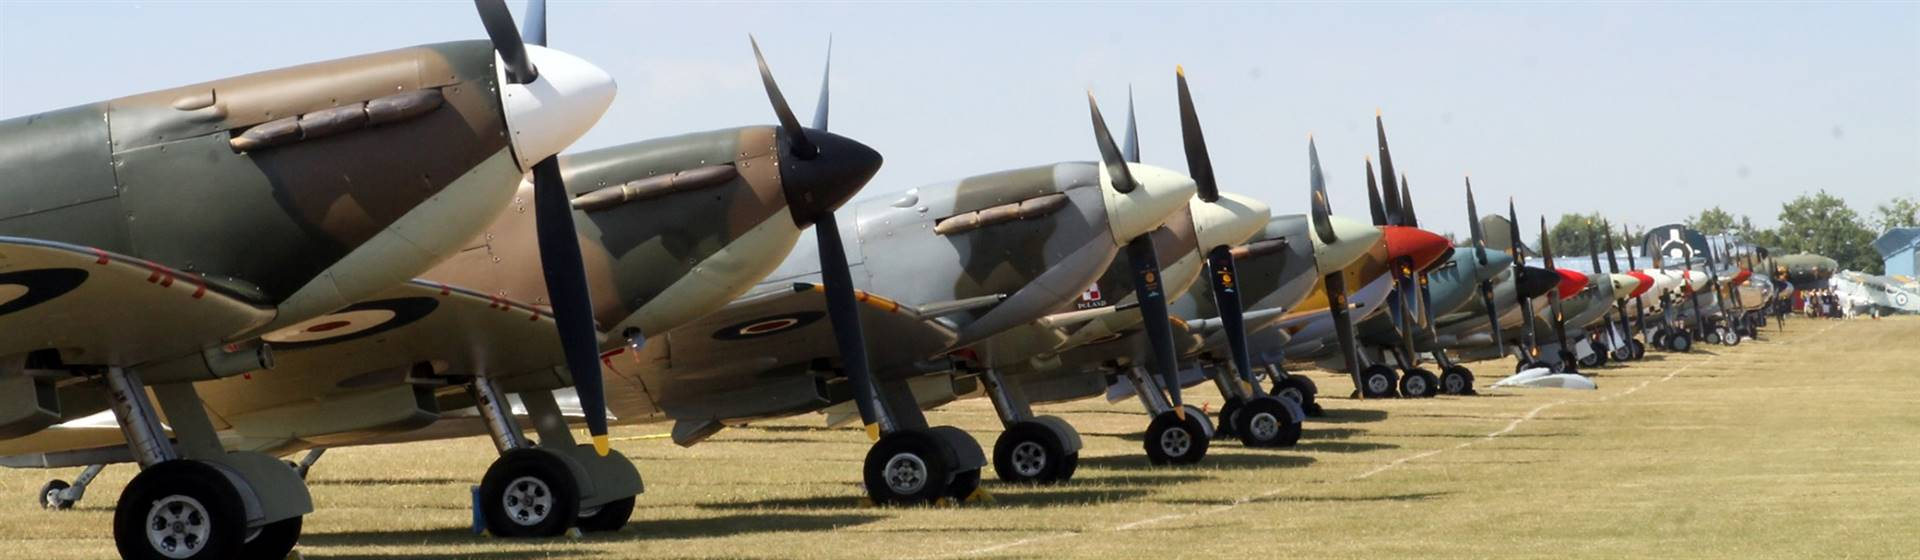 Flying Legends Air Show & Bletchley Park